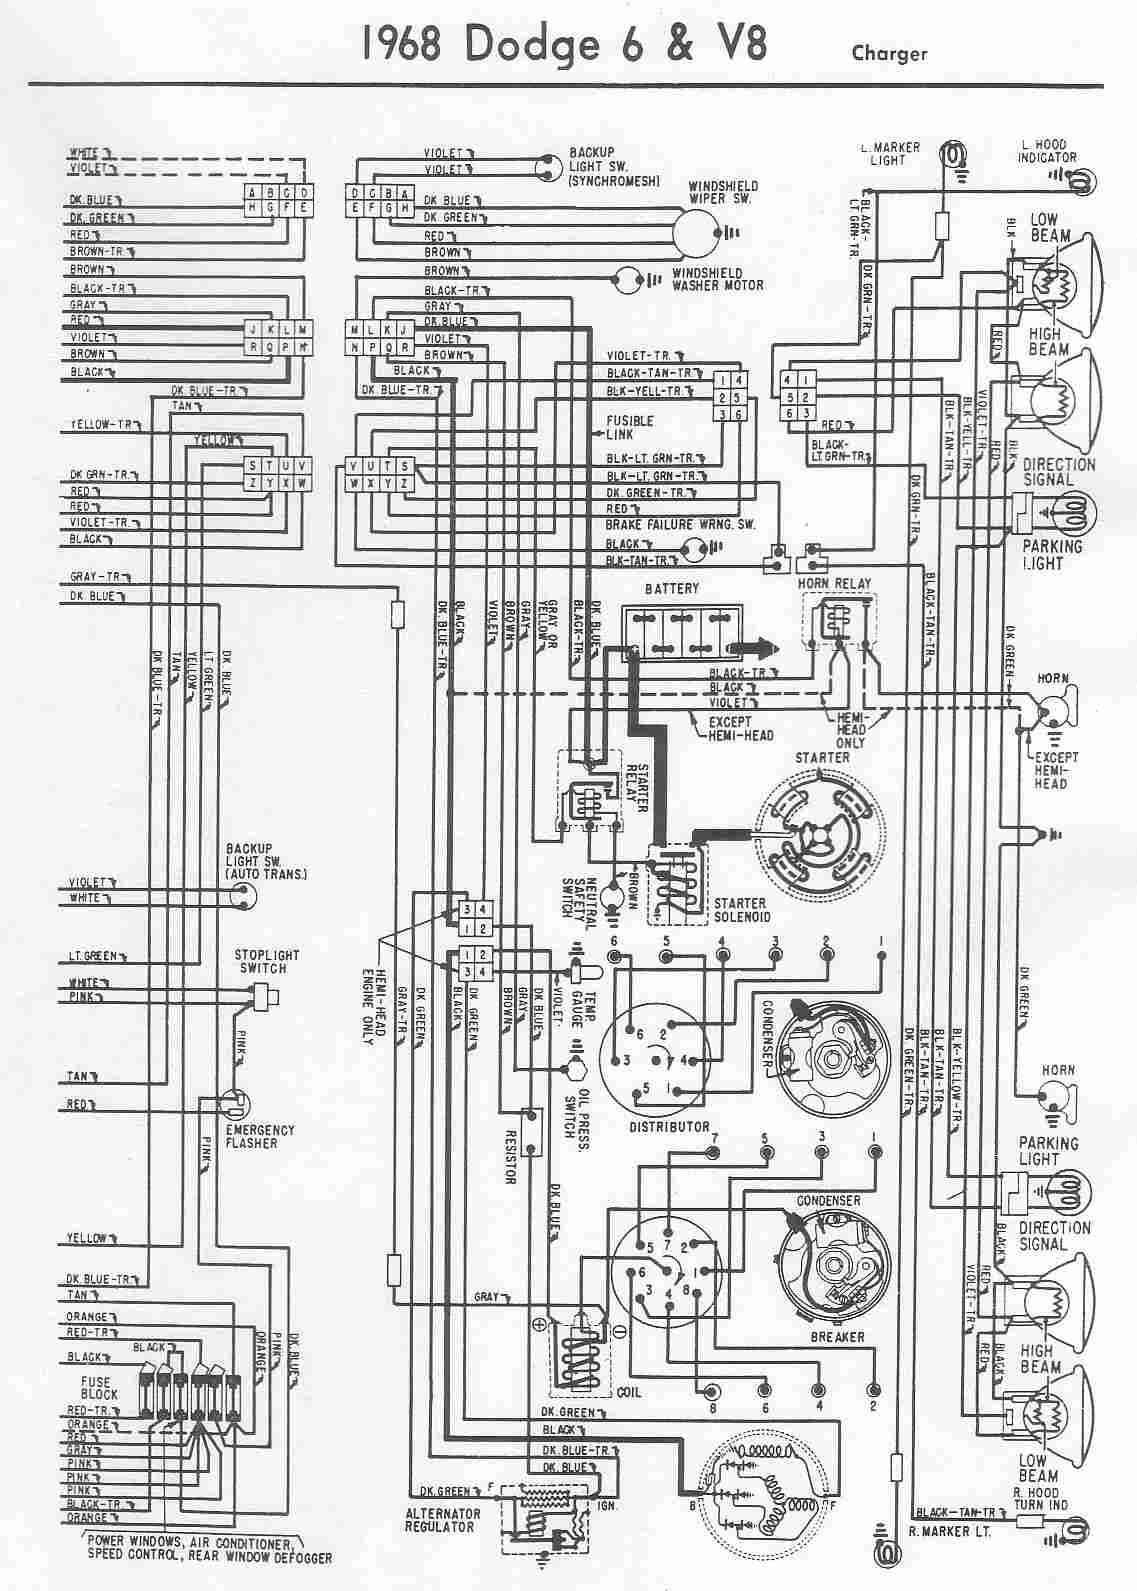 Dodge Car Manuals Wiring Diagrams Pdf Fault Codes 1993 Ram Van Fuse Box Diagram Download